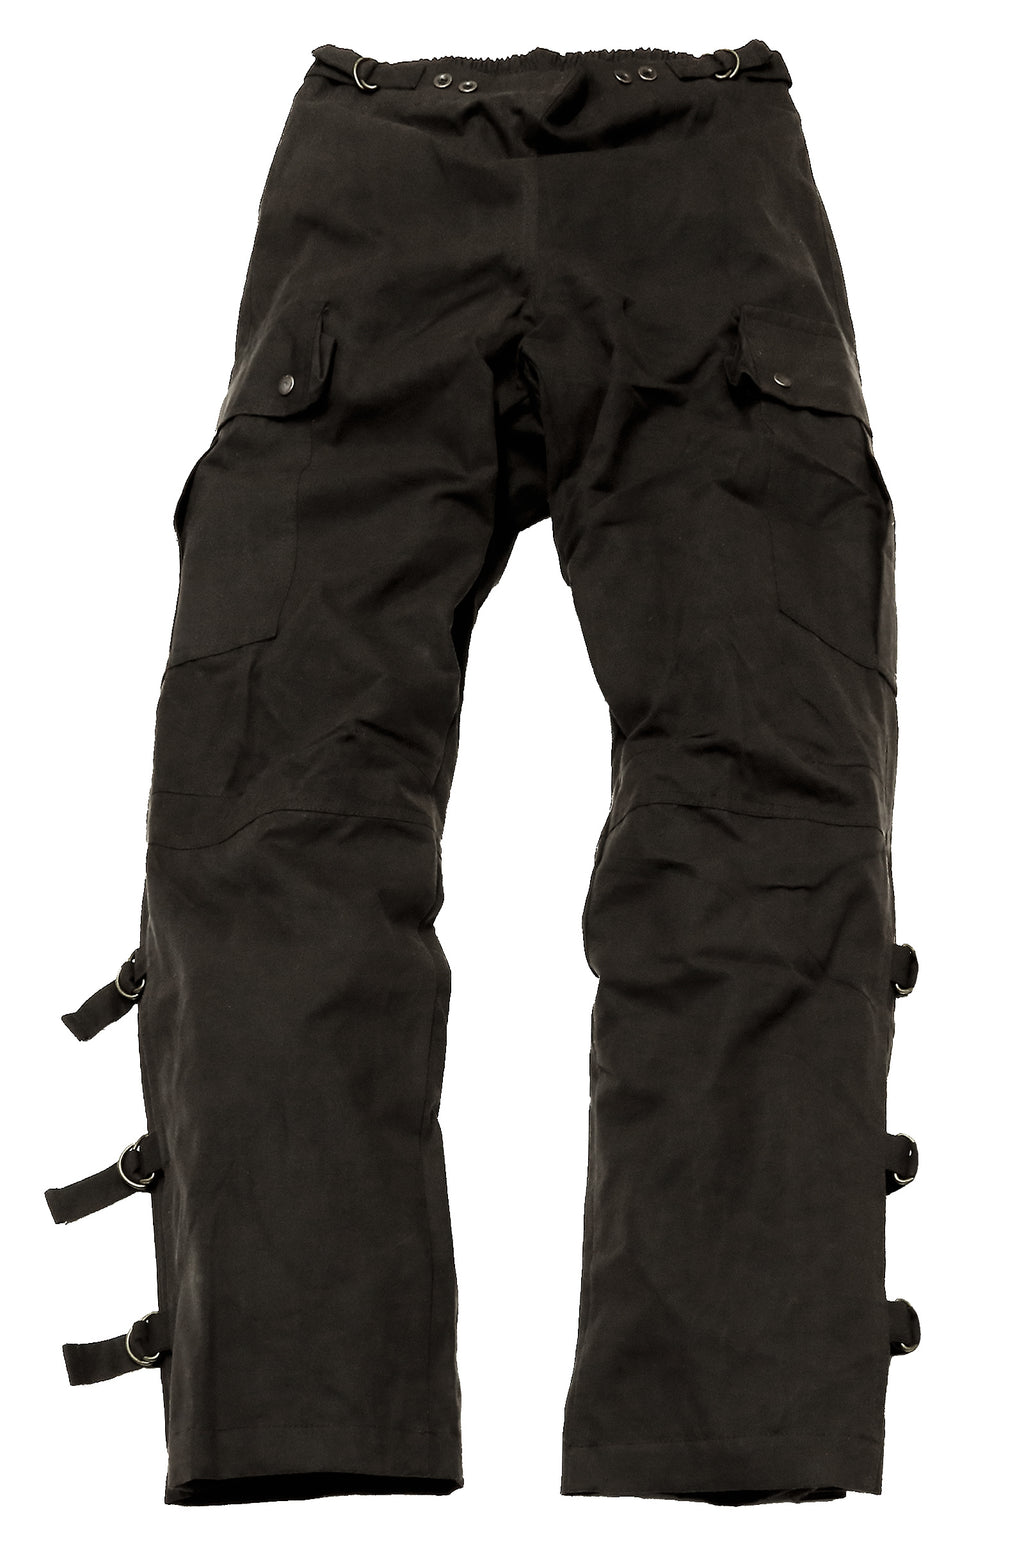 Weatherproof cover for outdoor bikers Rider pants Walk-a-bout Pants- in black - OUT OF AUSTRALIA | Kakadu Traders Australia